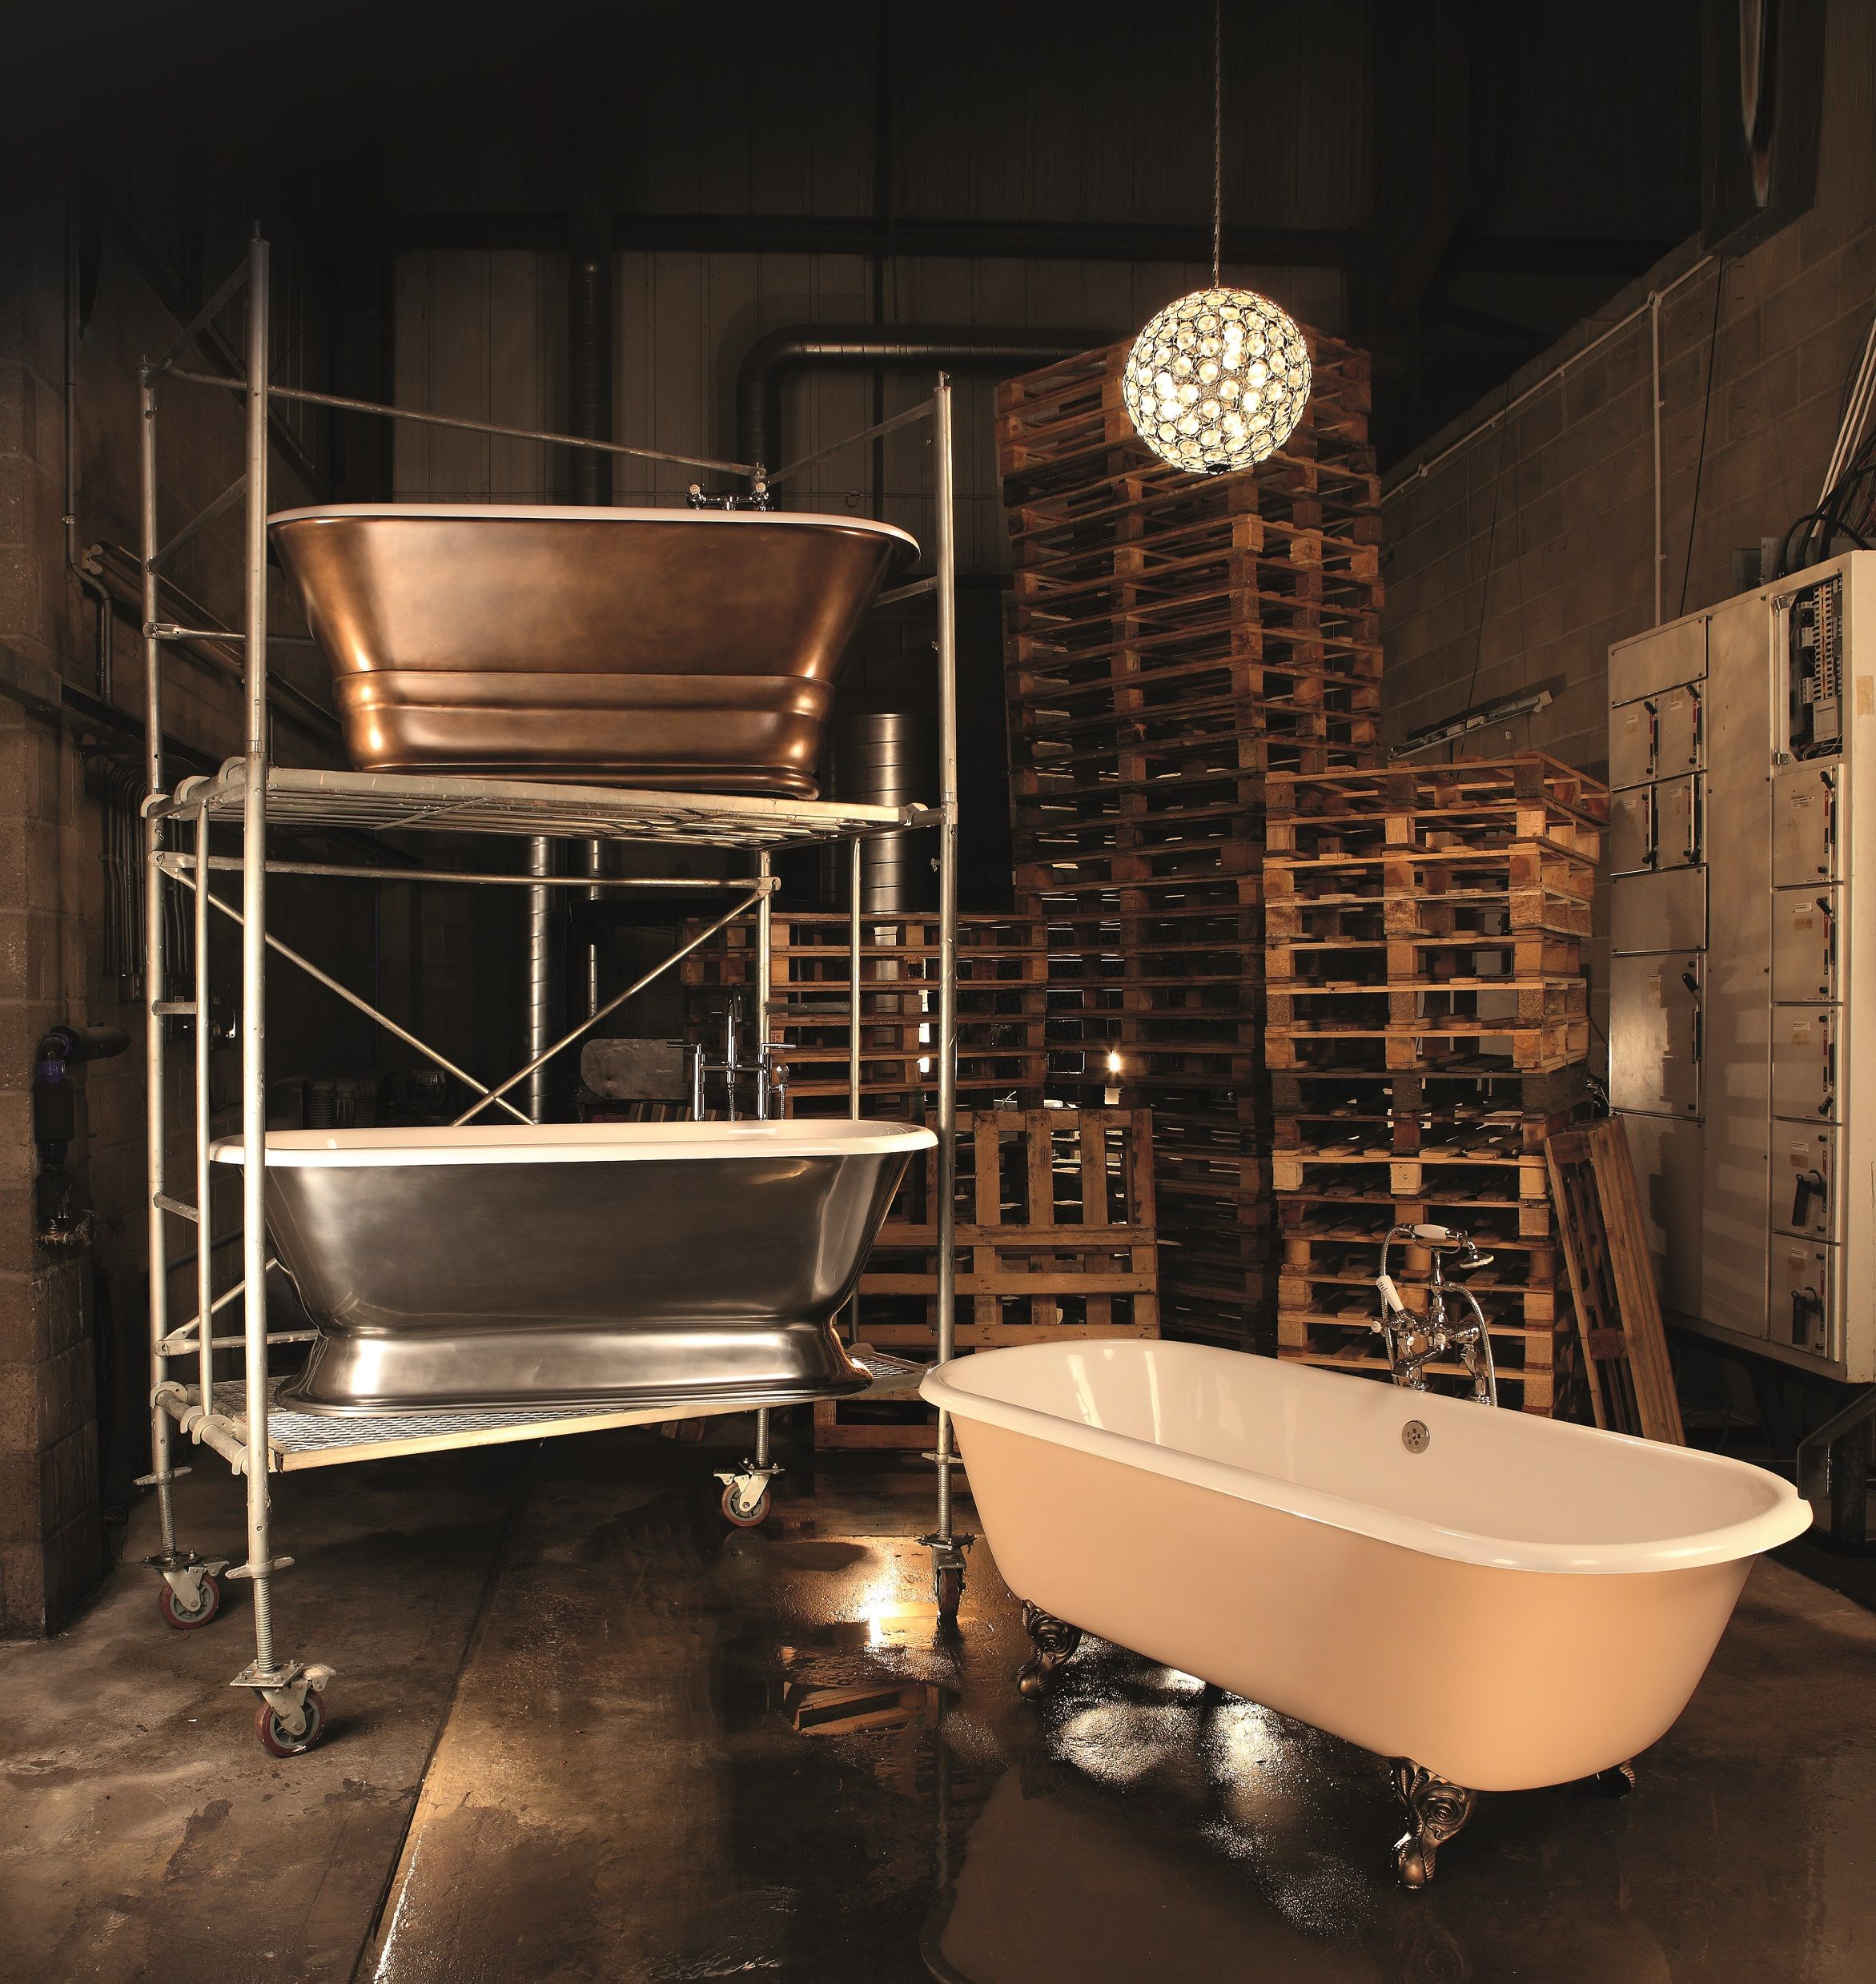 Family of Geminus Free Standing Bath Tubs - The Albion Bath Company ...